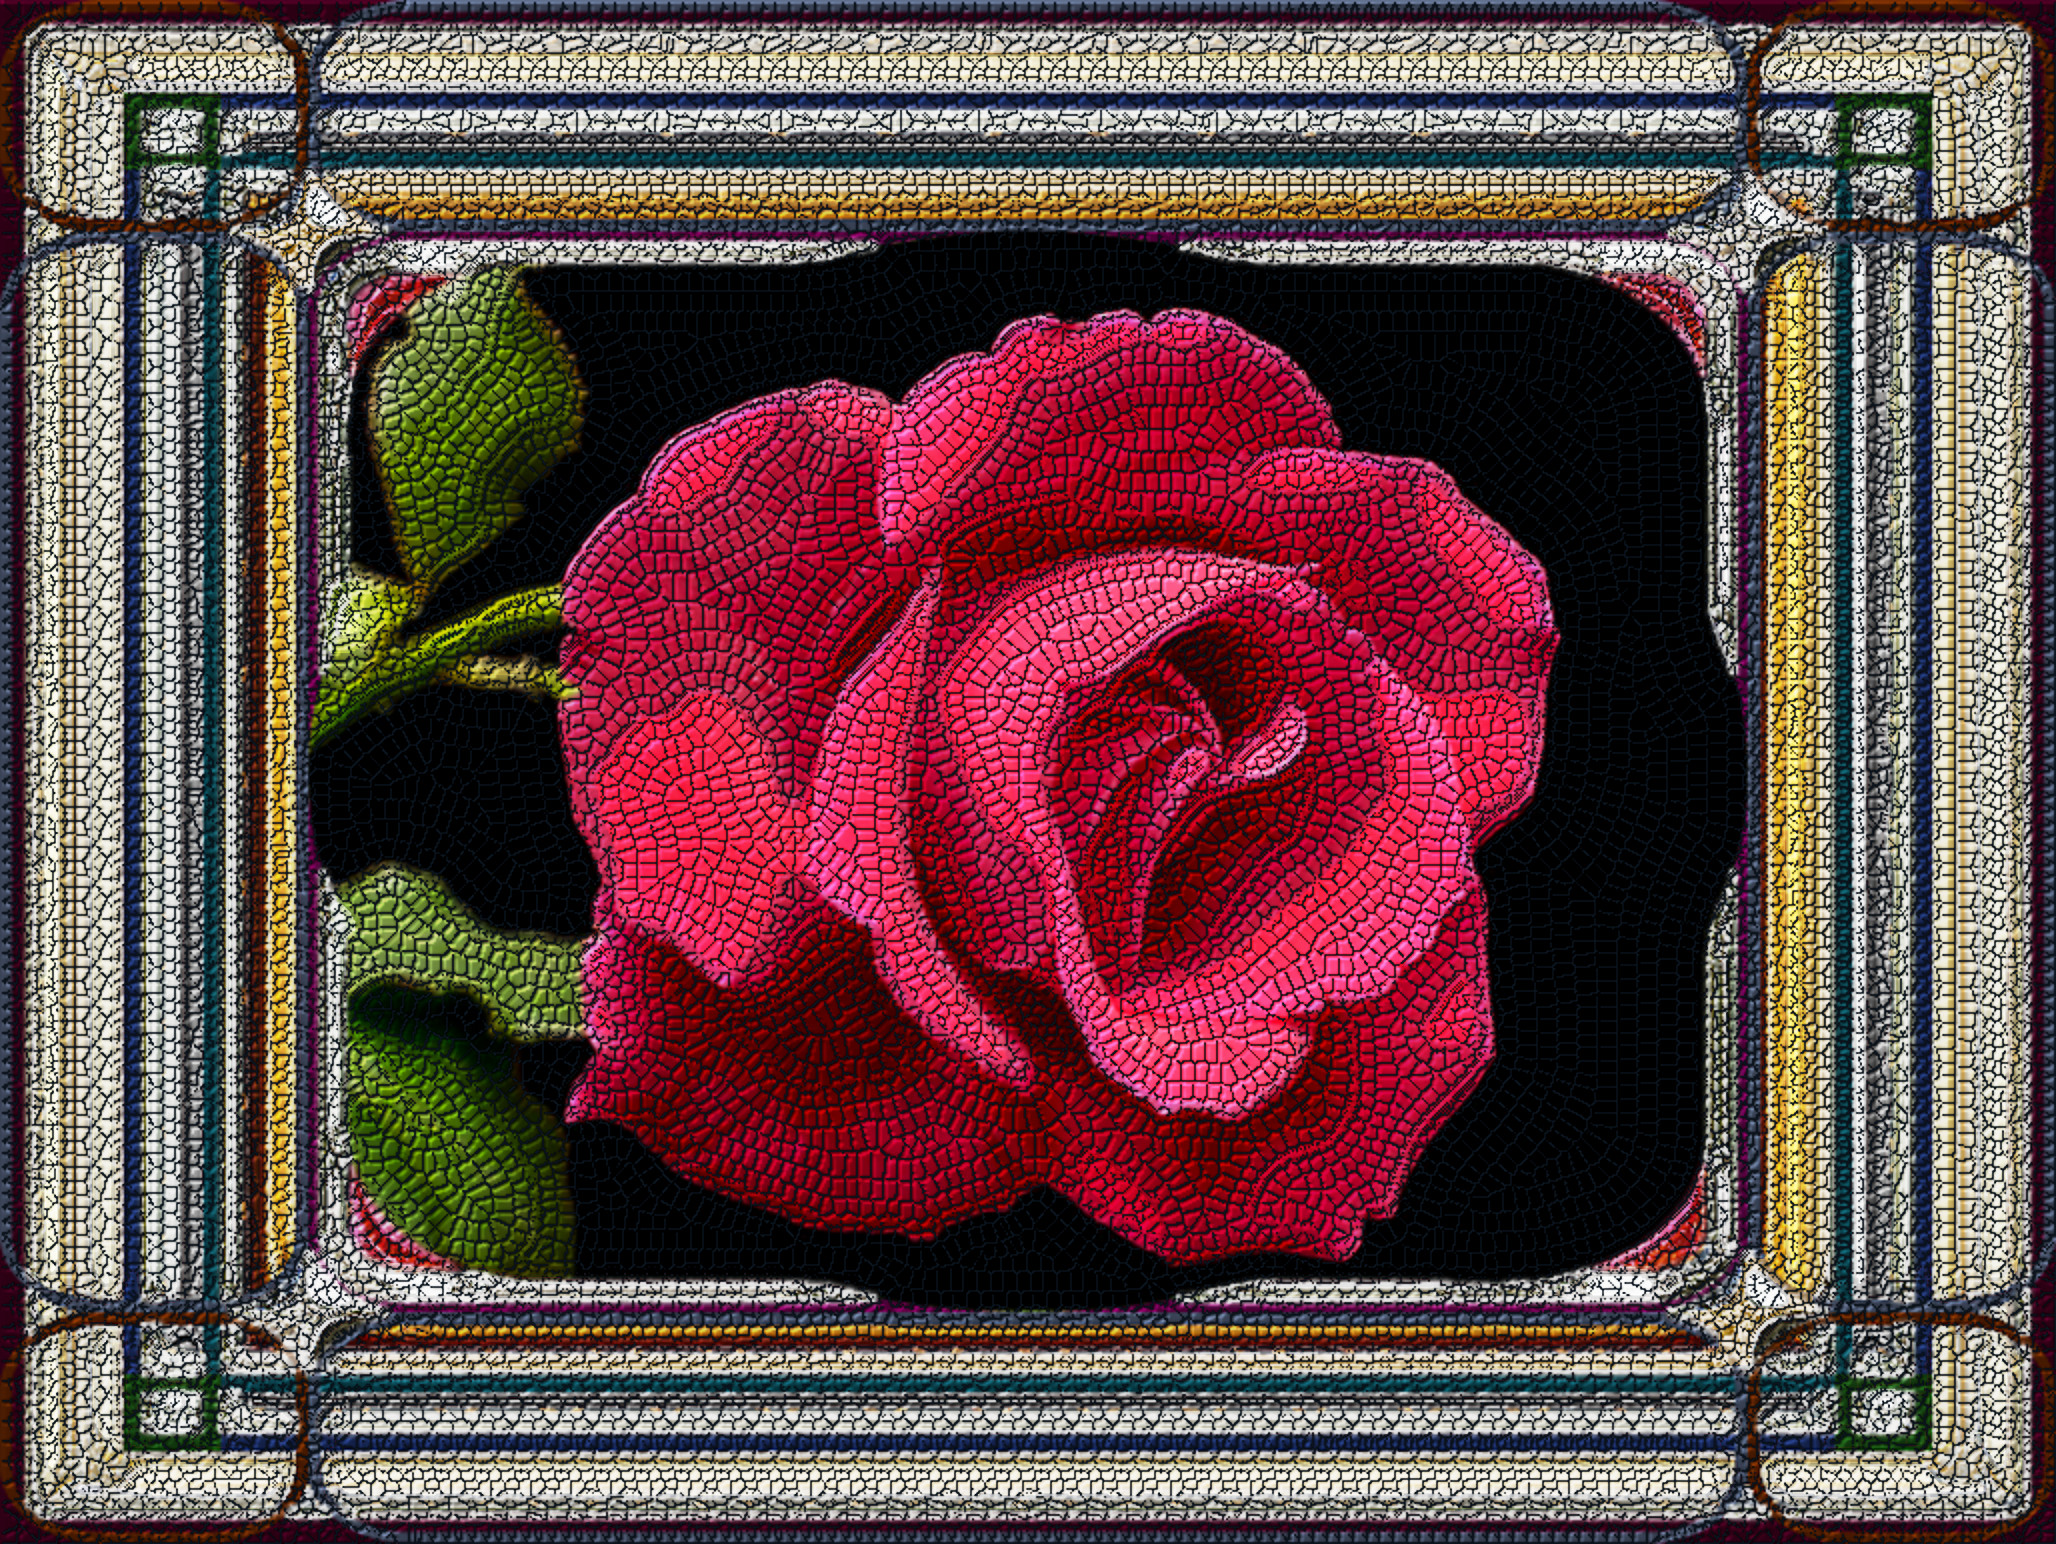 red-rose-Deco&Mosaic.jpg